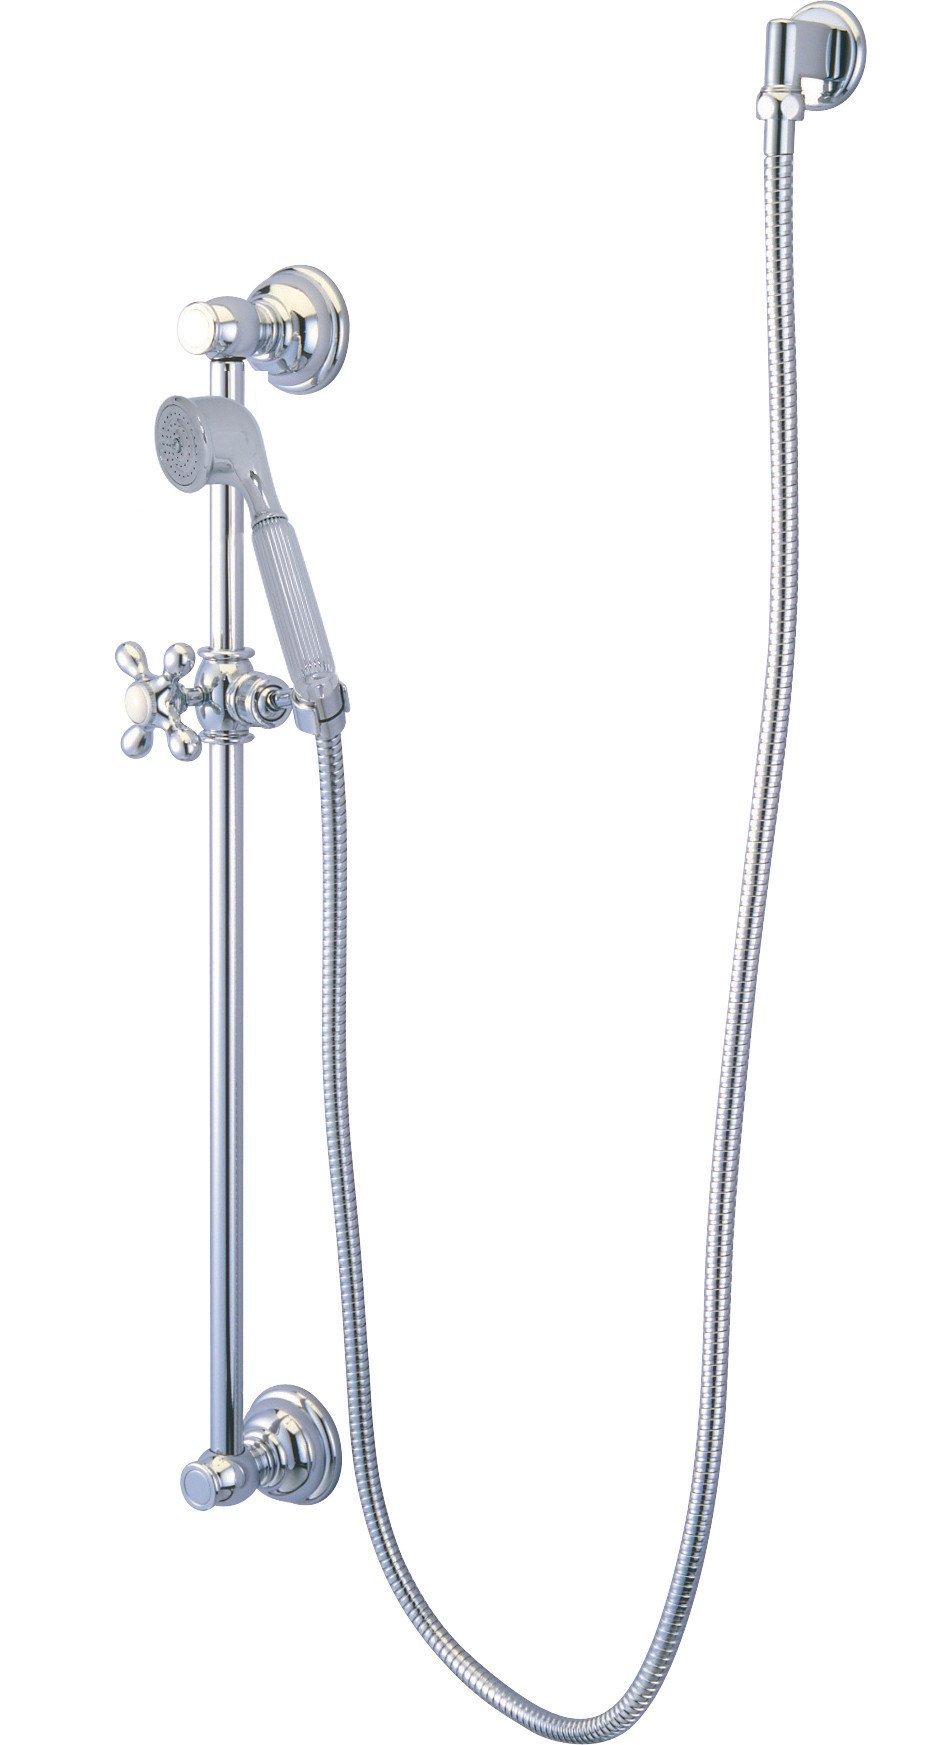 Kingston Brass Chrome 4 Piece Handheld Shower head Combo with ...